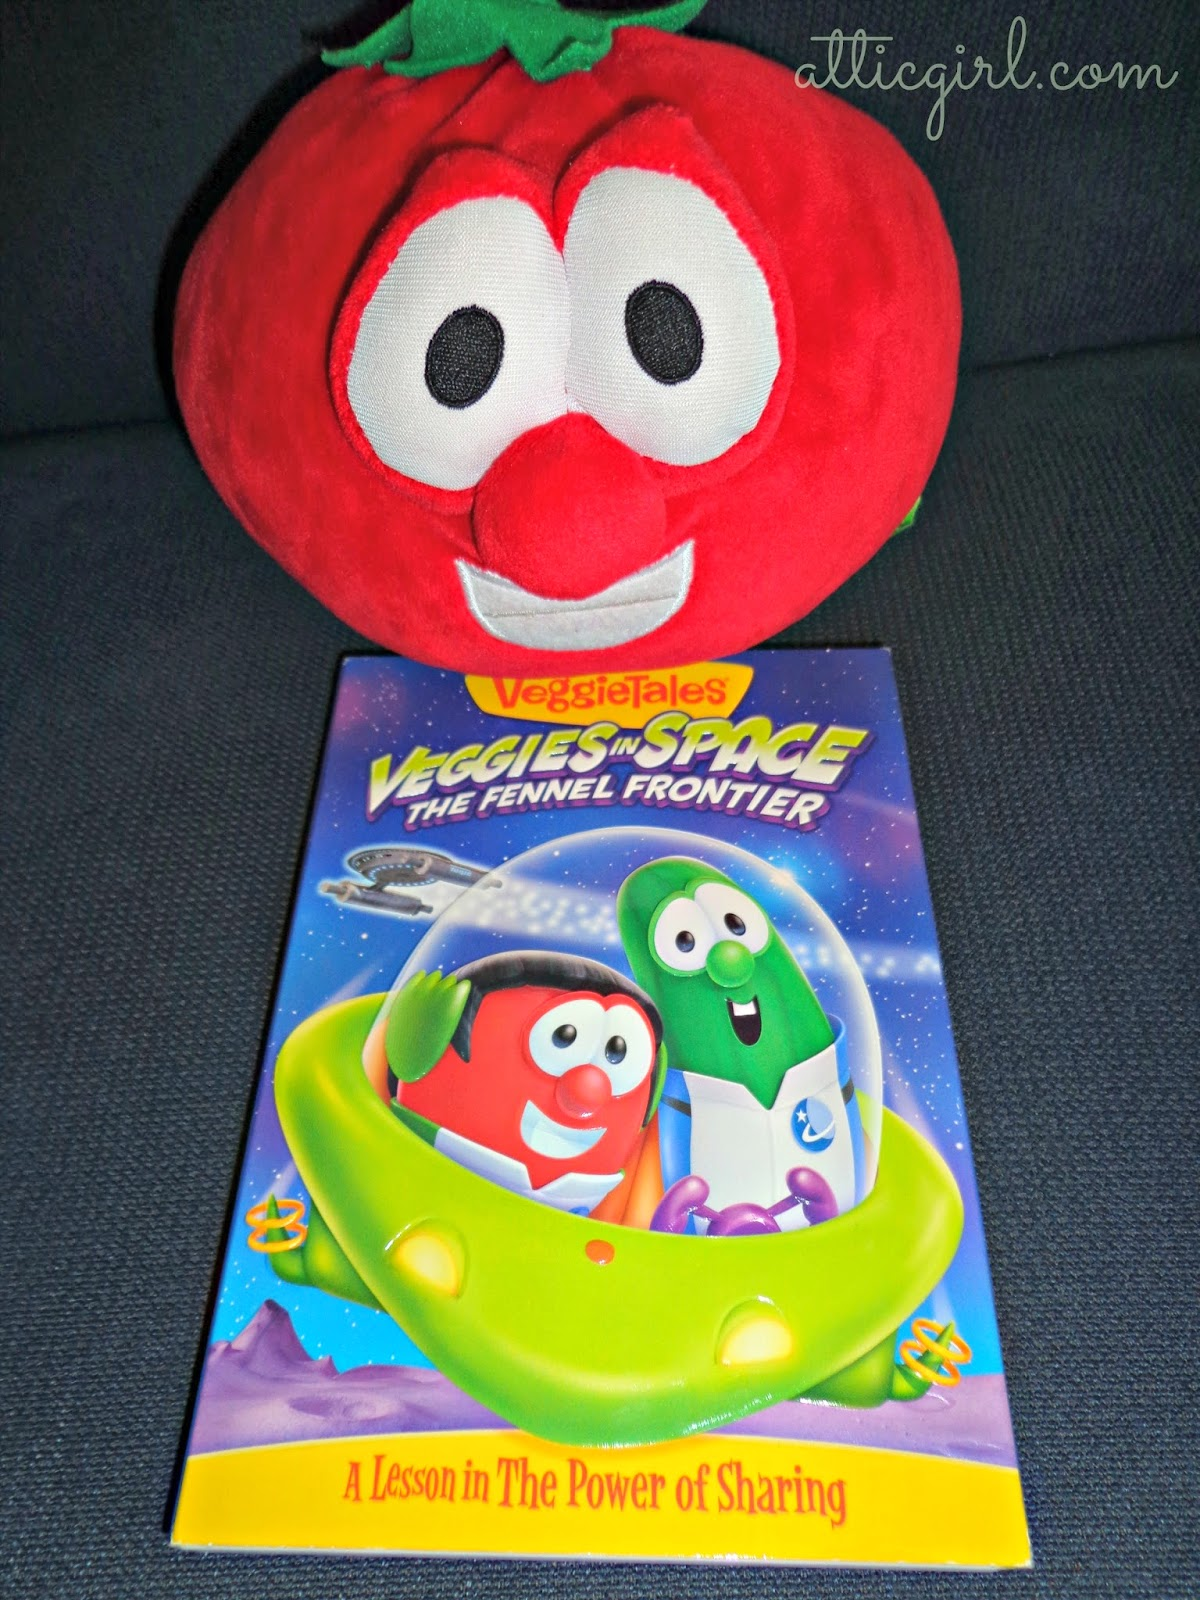 VeggieTales, Big Idea Productions